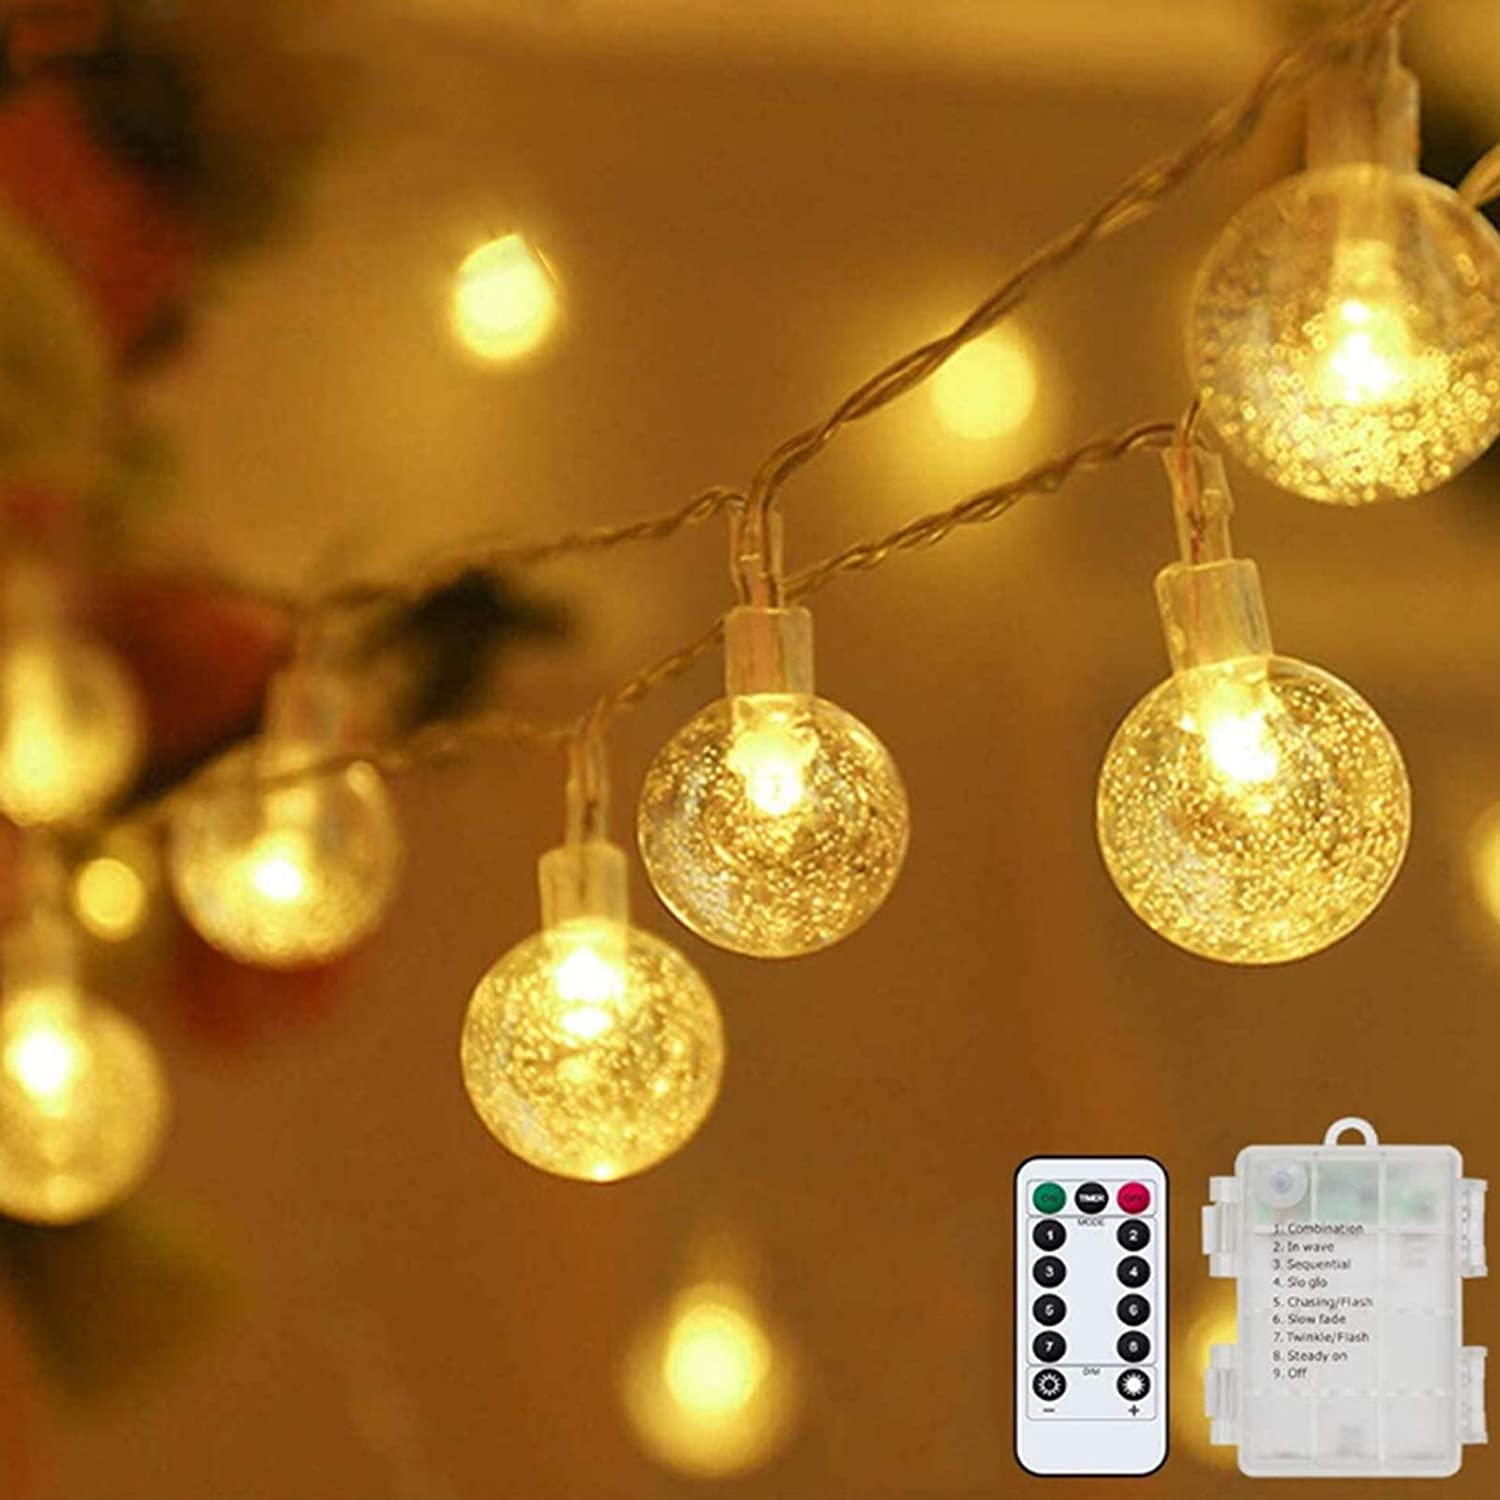 Amazon Com Metaku Globe String Lights Fairy Lights Battery Operated 33ft 80led String Lights With Remote Waterproof Indoor Outdoor Hanging Lights Decorative Christmas Lights For Home Party Patio Garden Wedding Garden